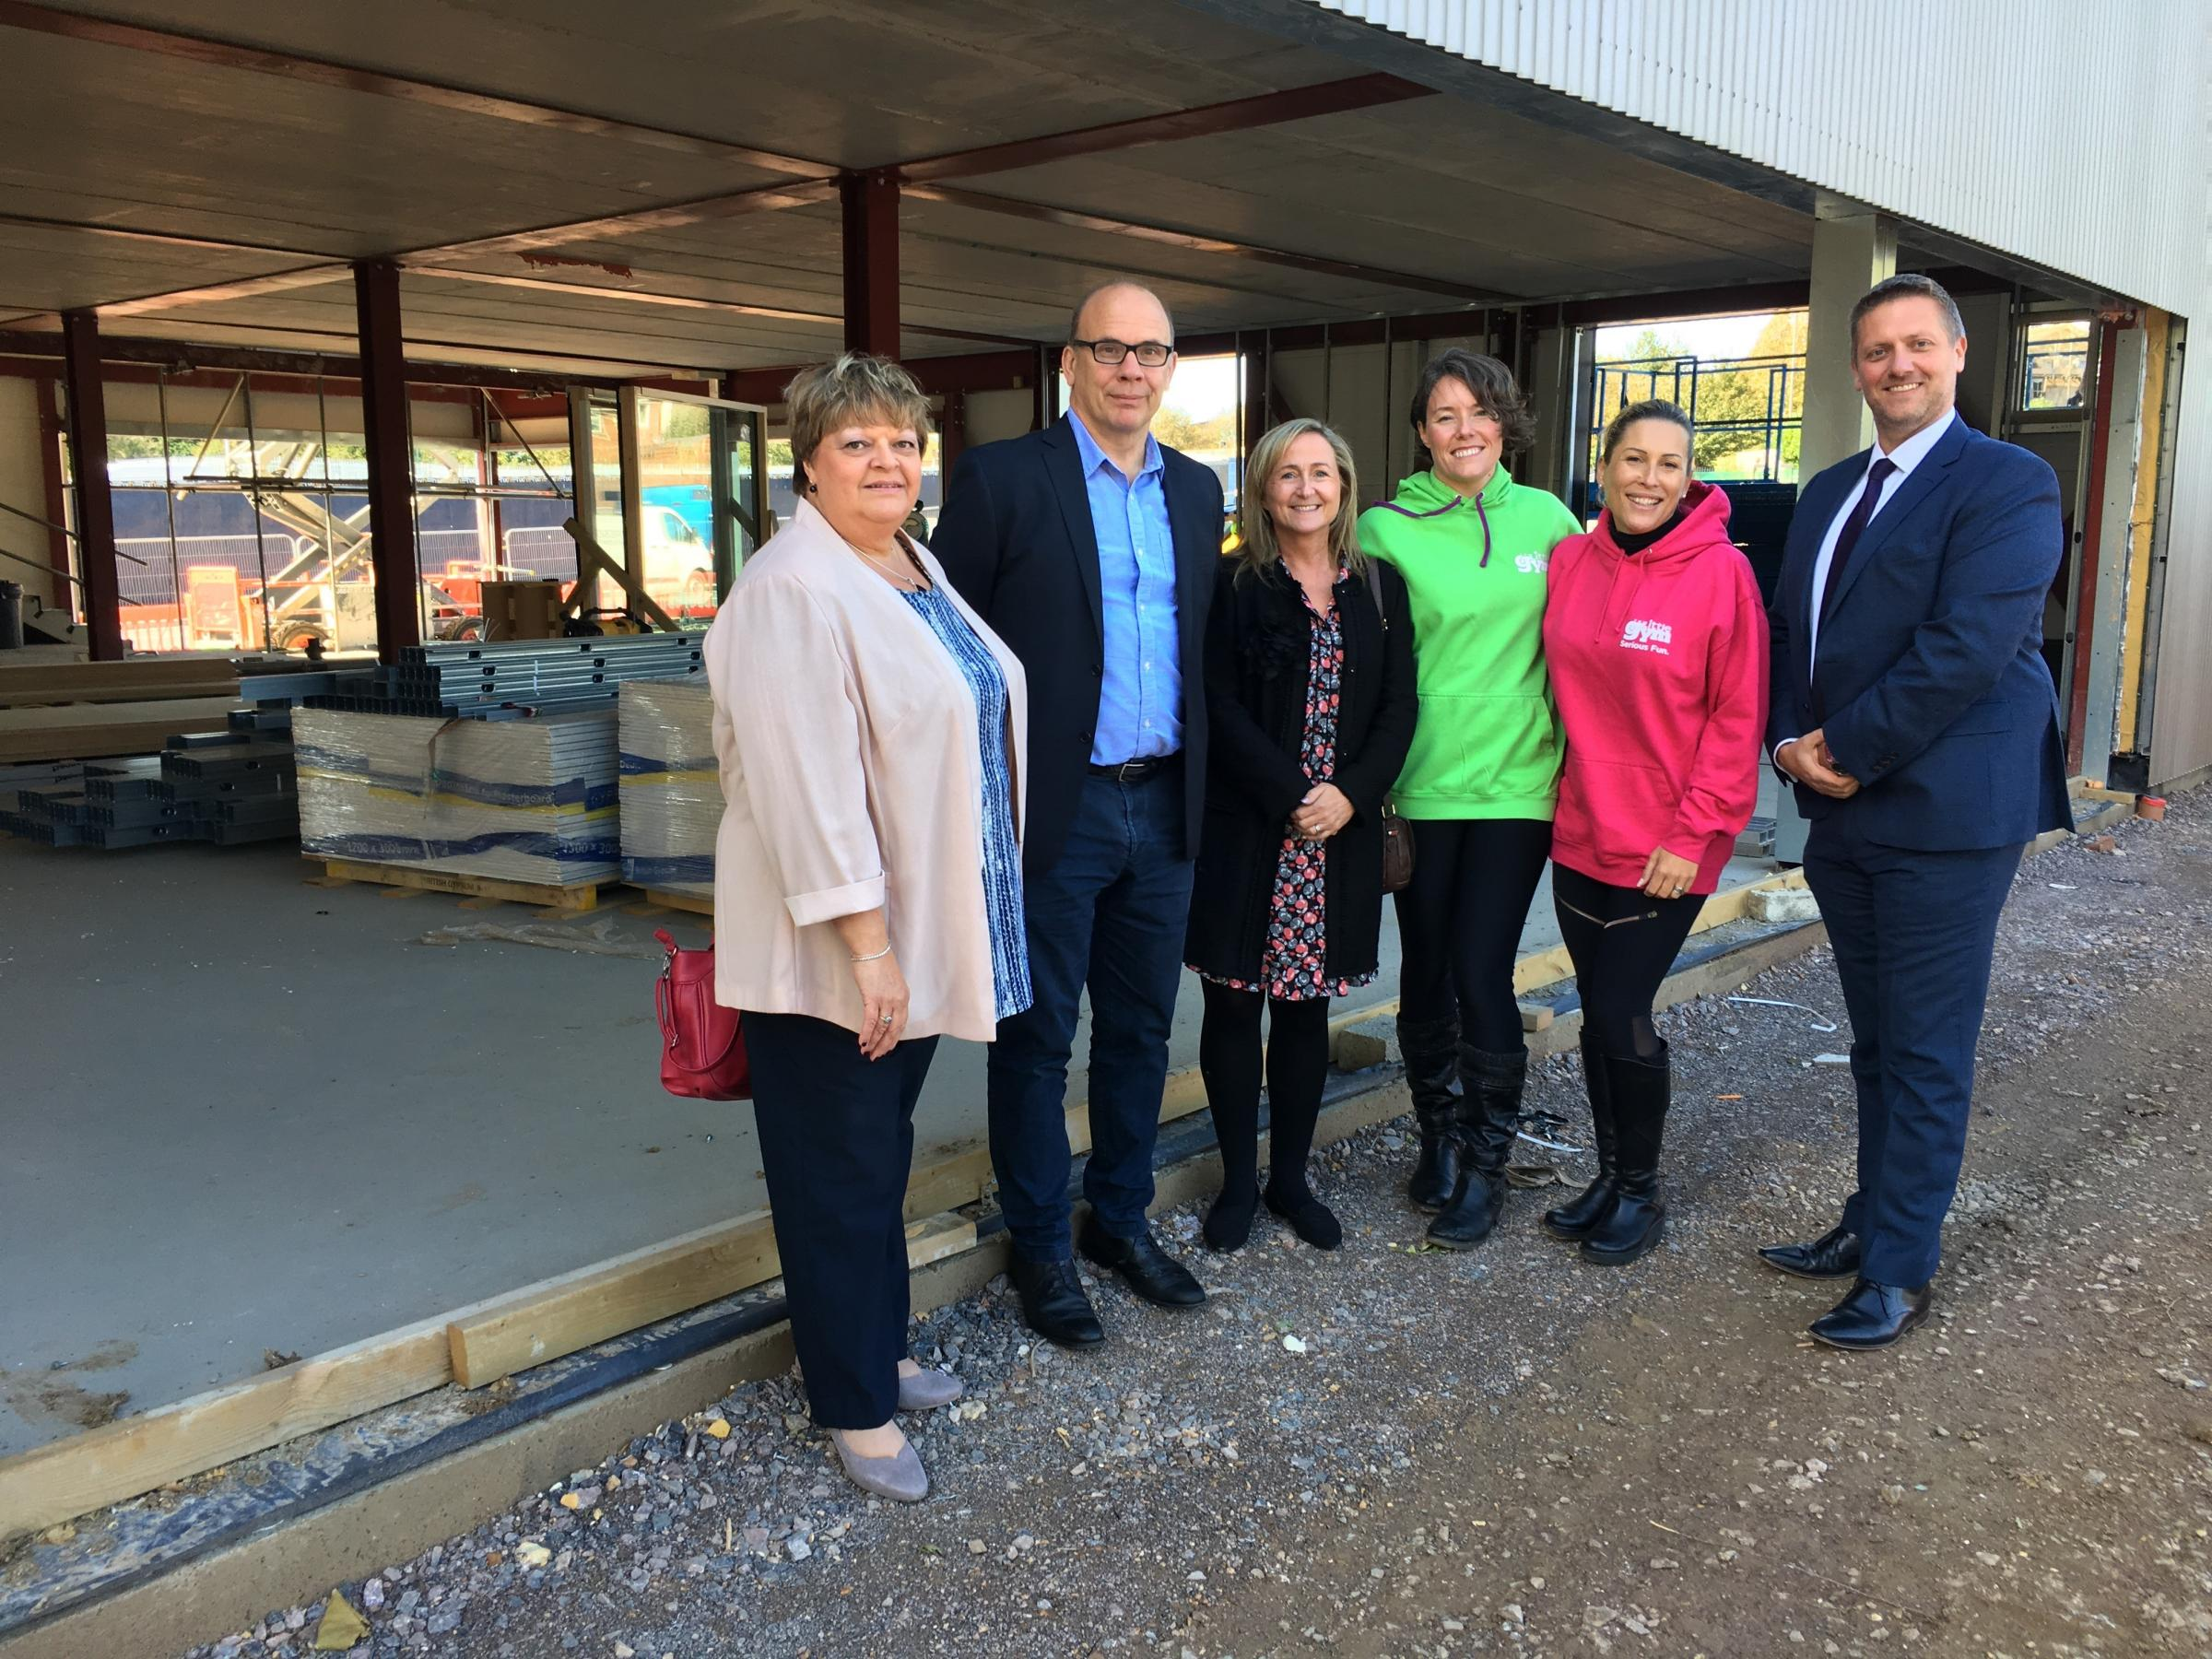 Council leader Katrina Wood, Tim Hodgson and Olivia Foley from Hungry Caterpillar Day Nurseries, Matina Macintyre and Andi Page from The Little Gym and Cllr Steve Broadbent